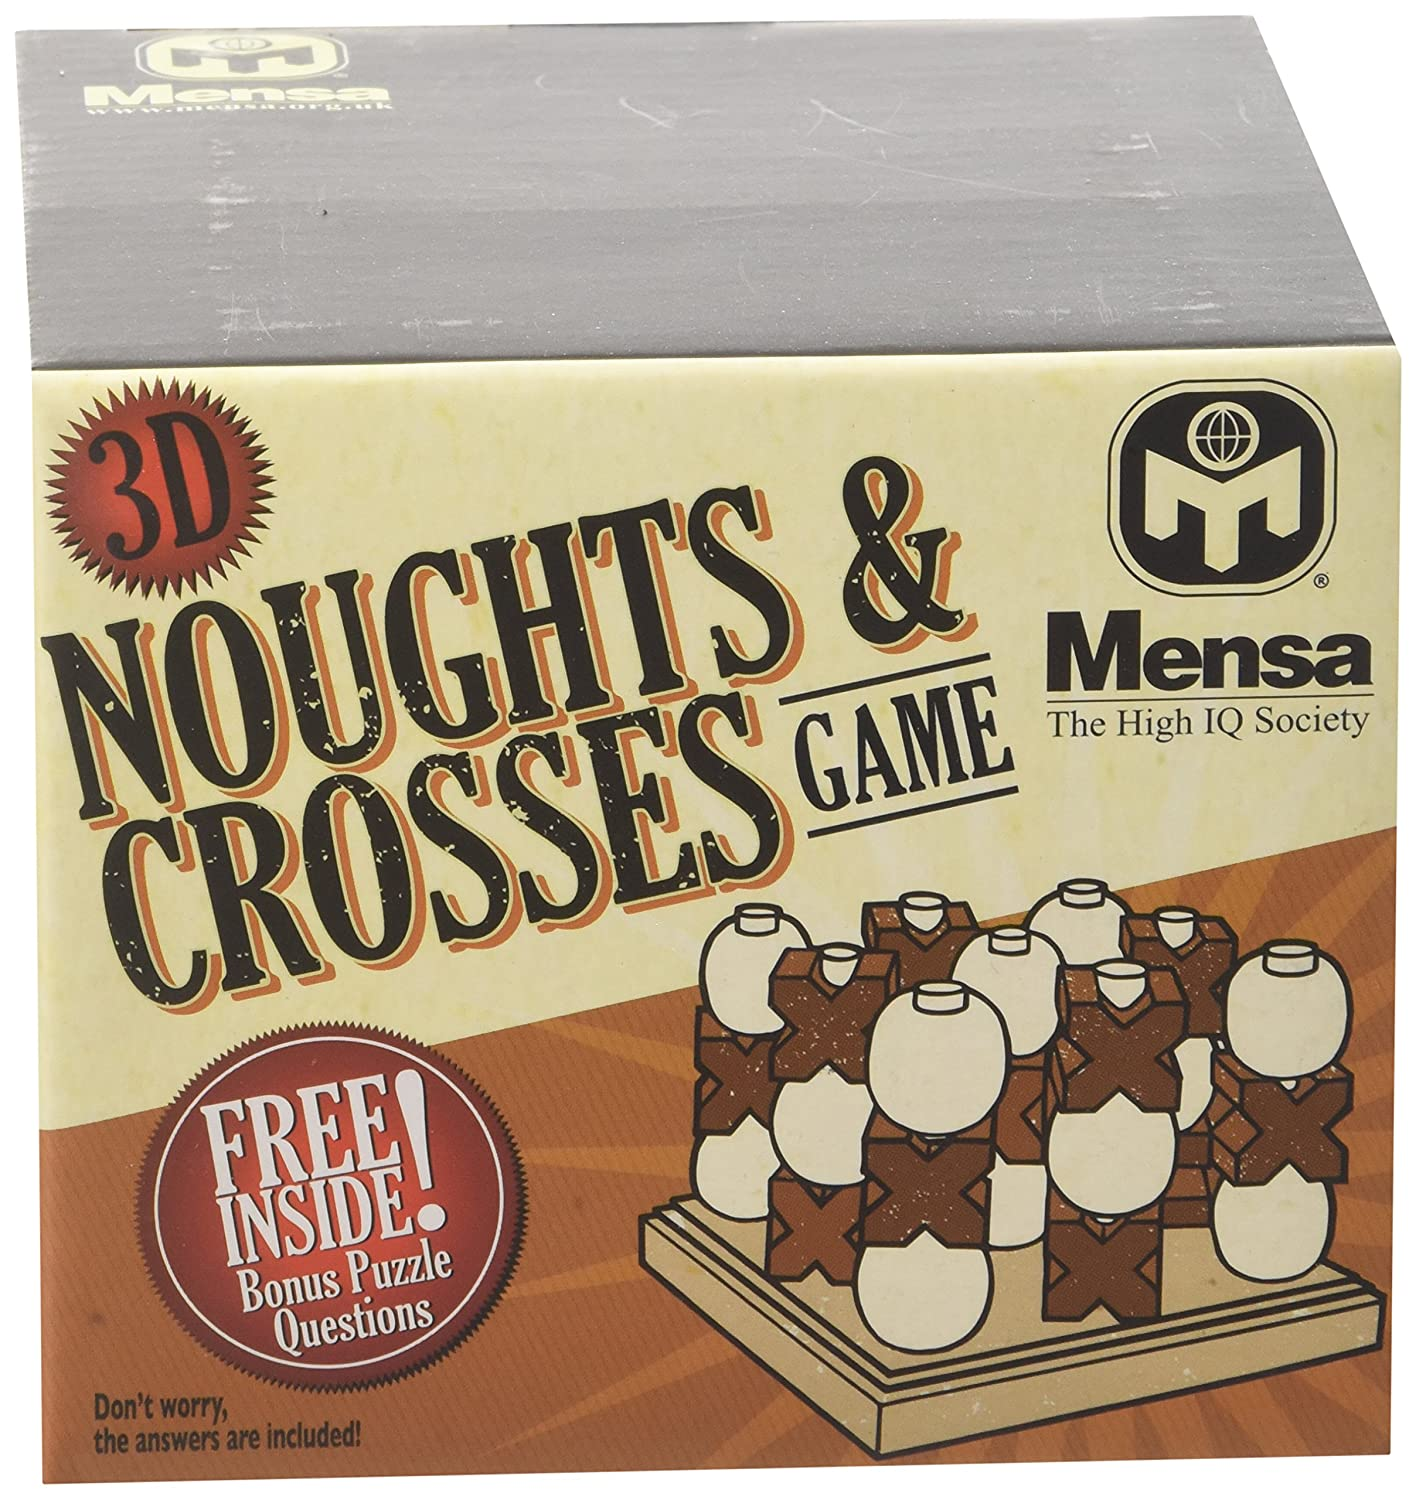 Mensa 874023 3D Noughts and Crosses Puzzle